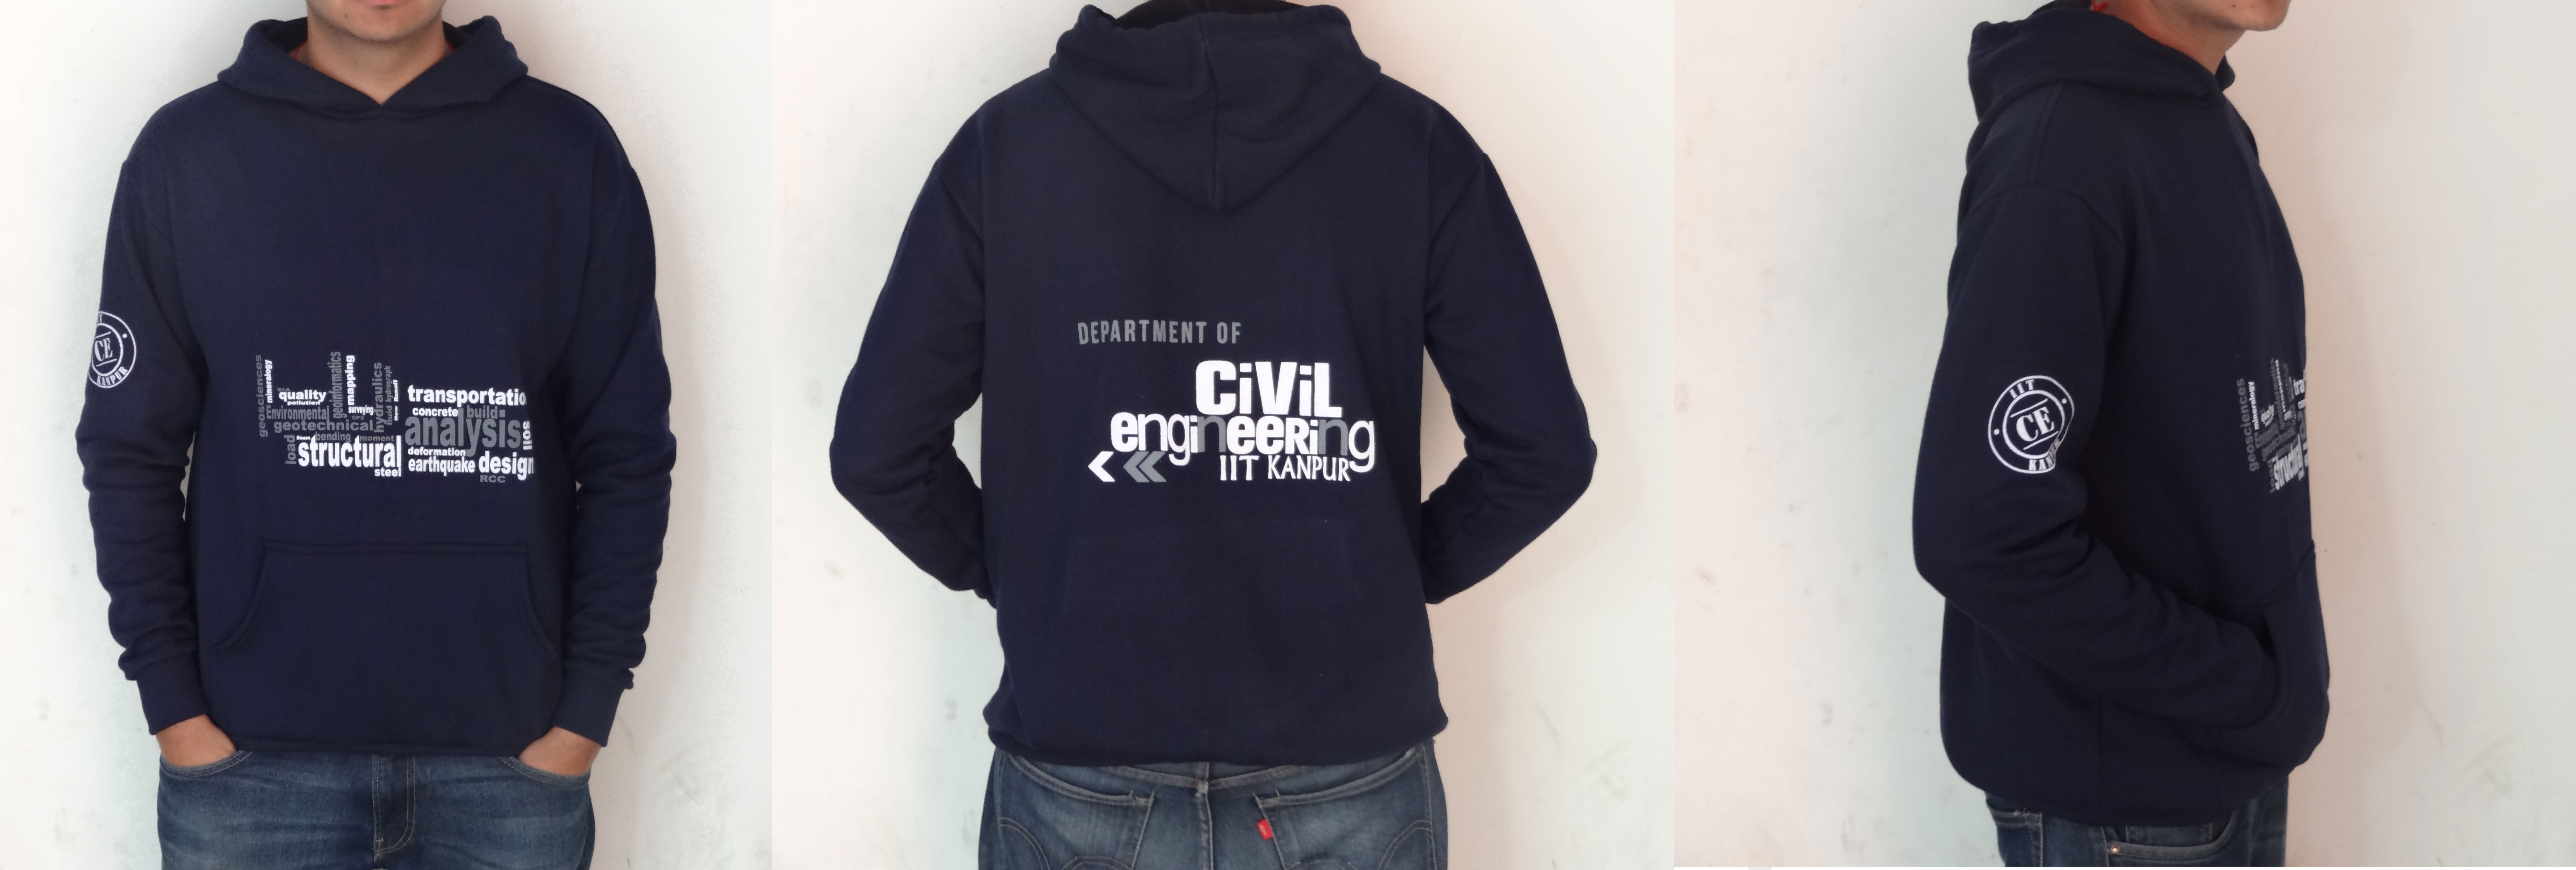 Design t shirt civil engineering - Department Sweat Shirts Are Out To Know More